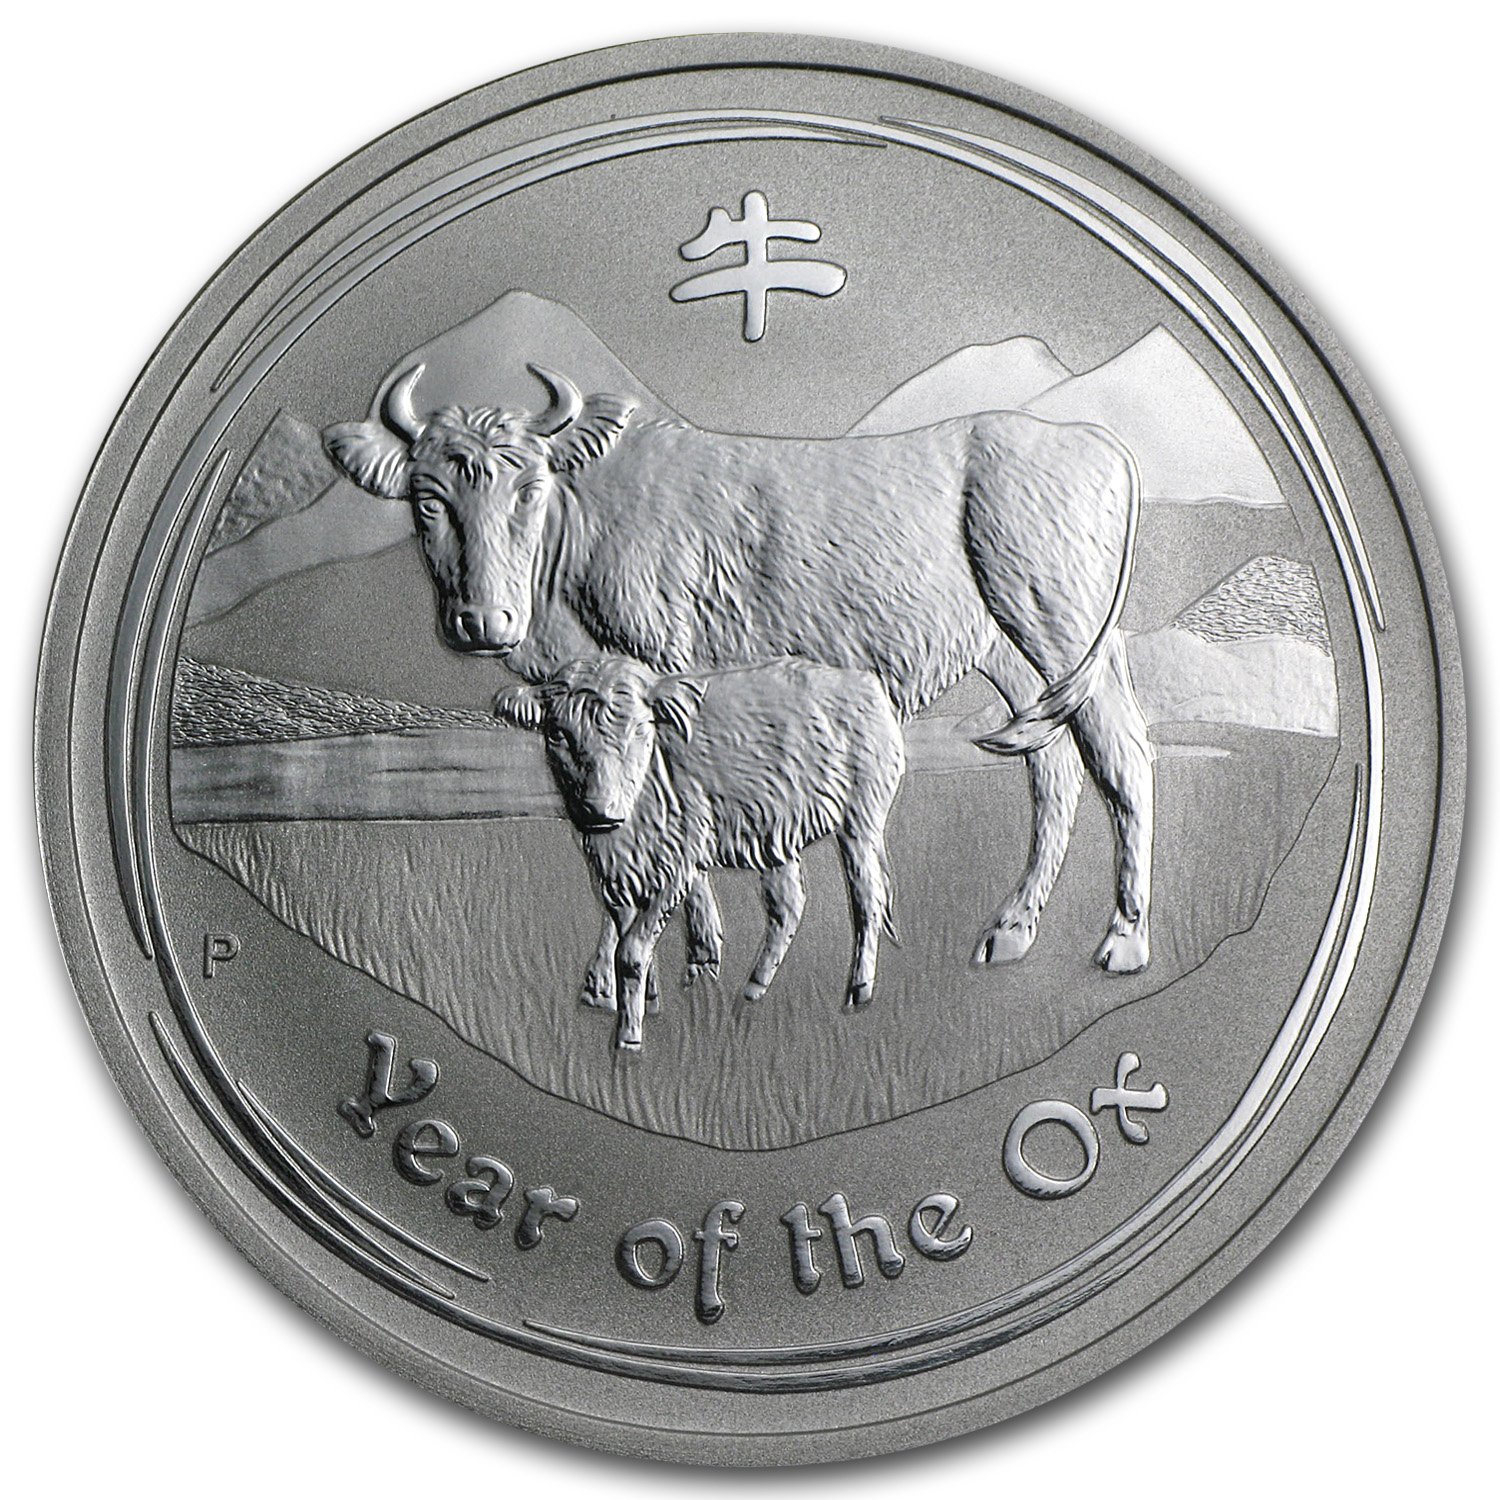 2009 1 oz Silver Year of the Ox Coin (Series II)